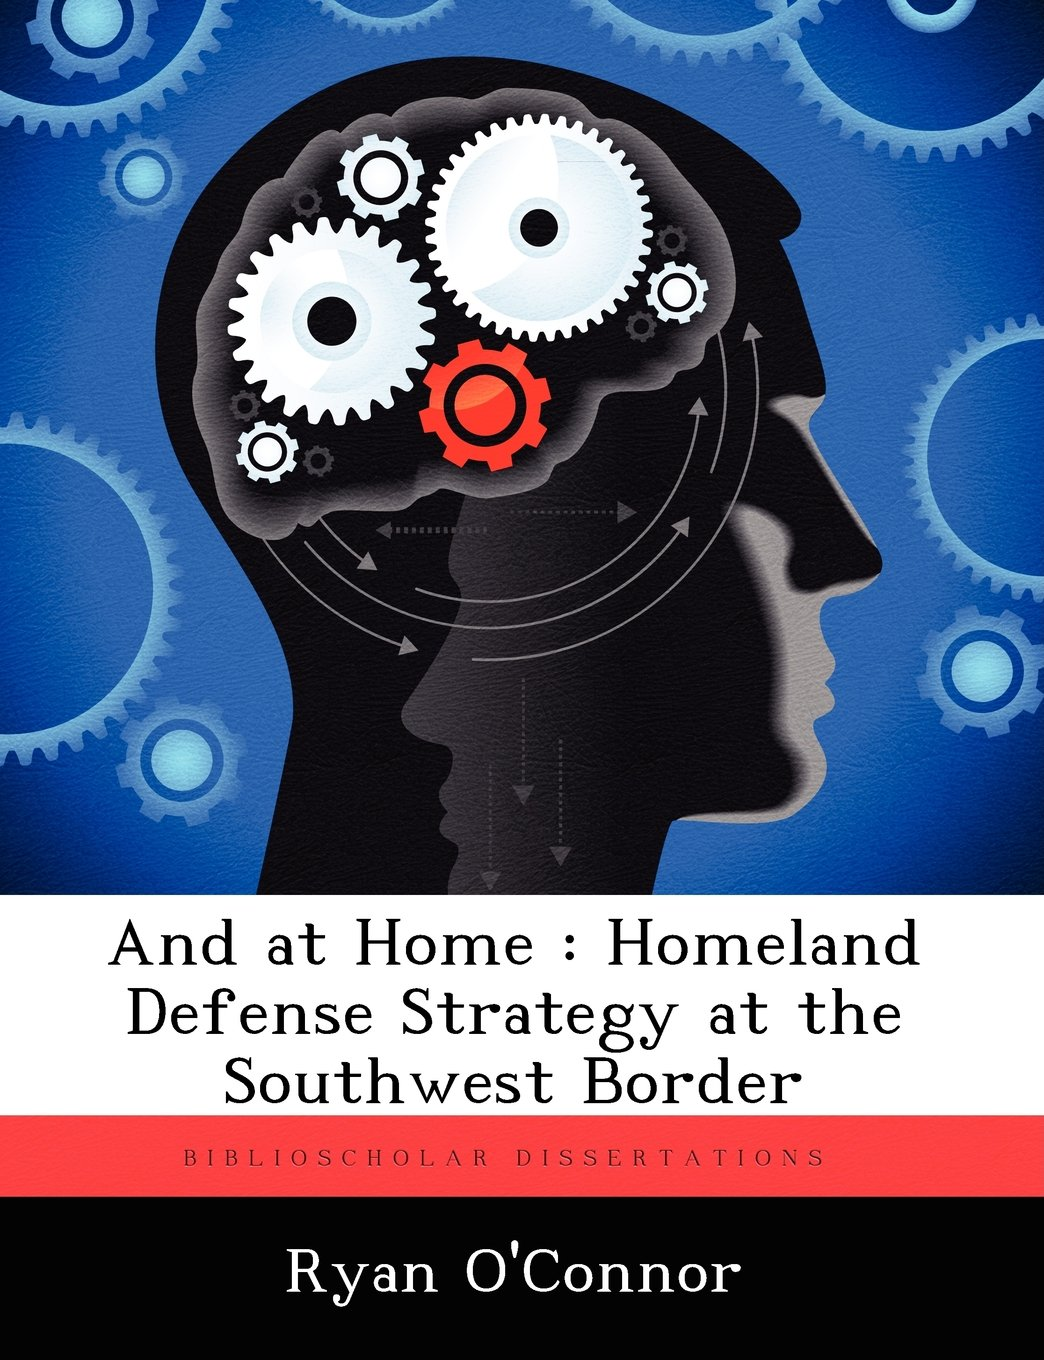 And at Home: Homeland Defense Strategy at the Southwest Border pdf